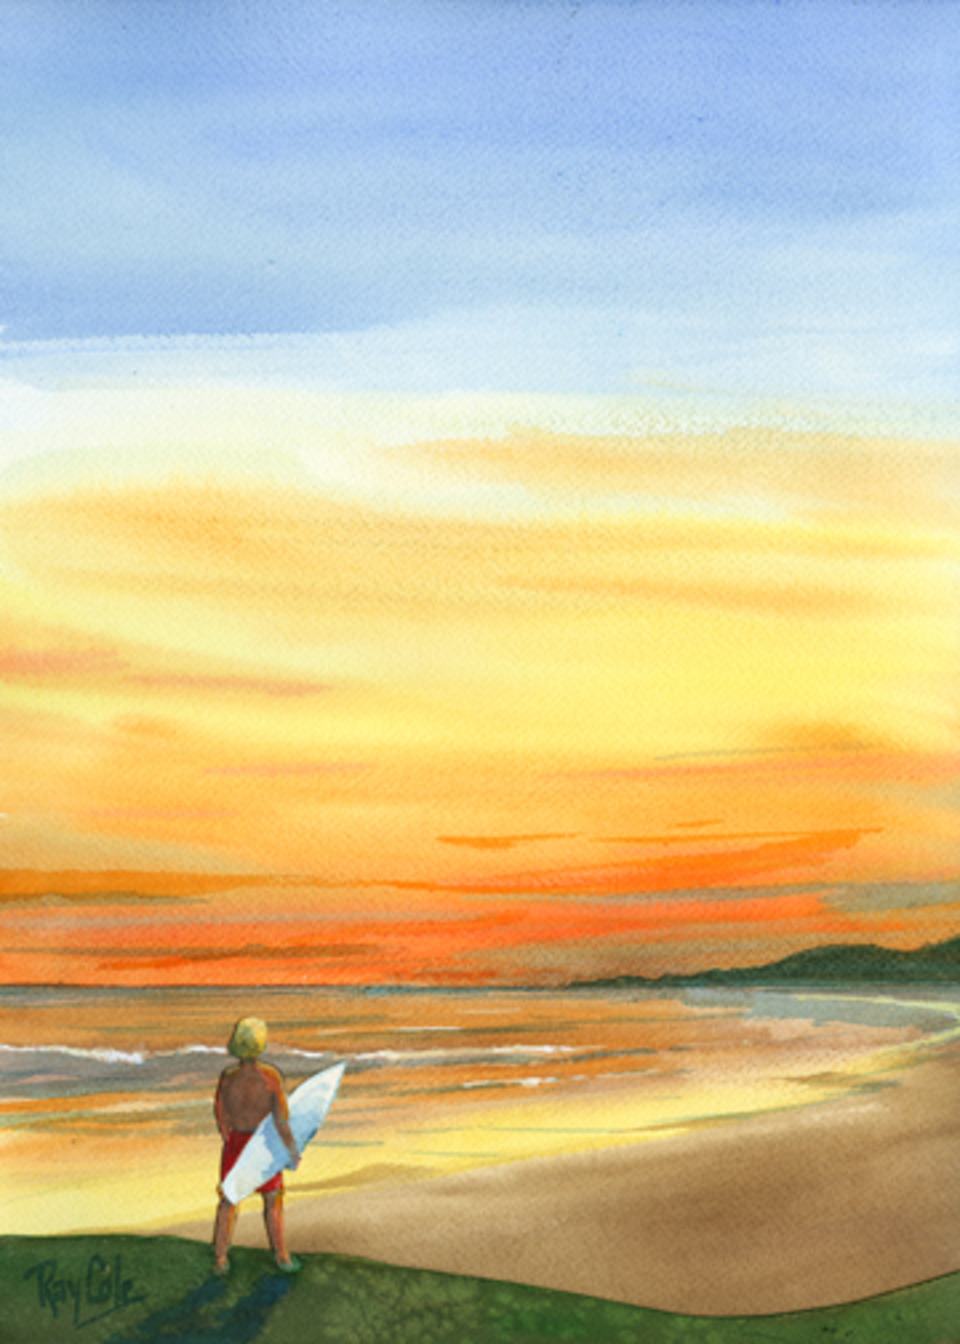 Surfer on beach20120917 15884 1qq5dve 0